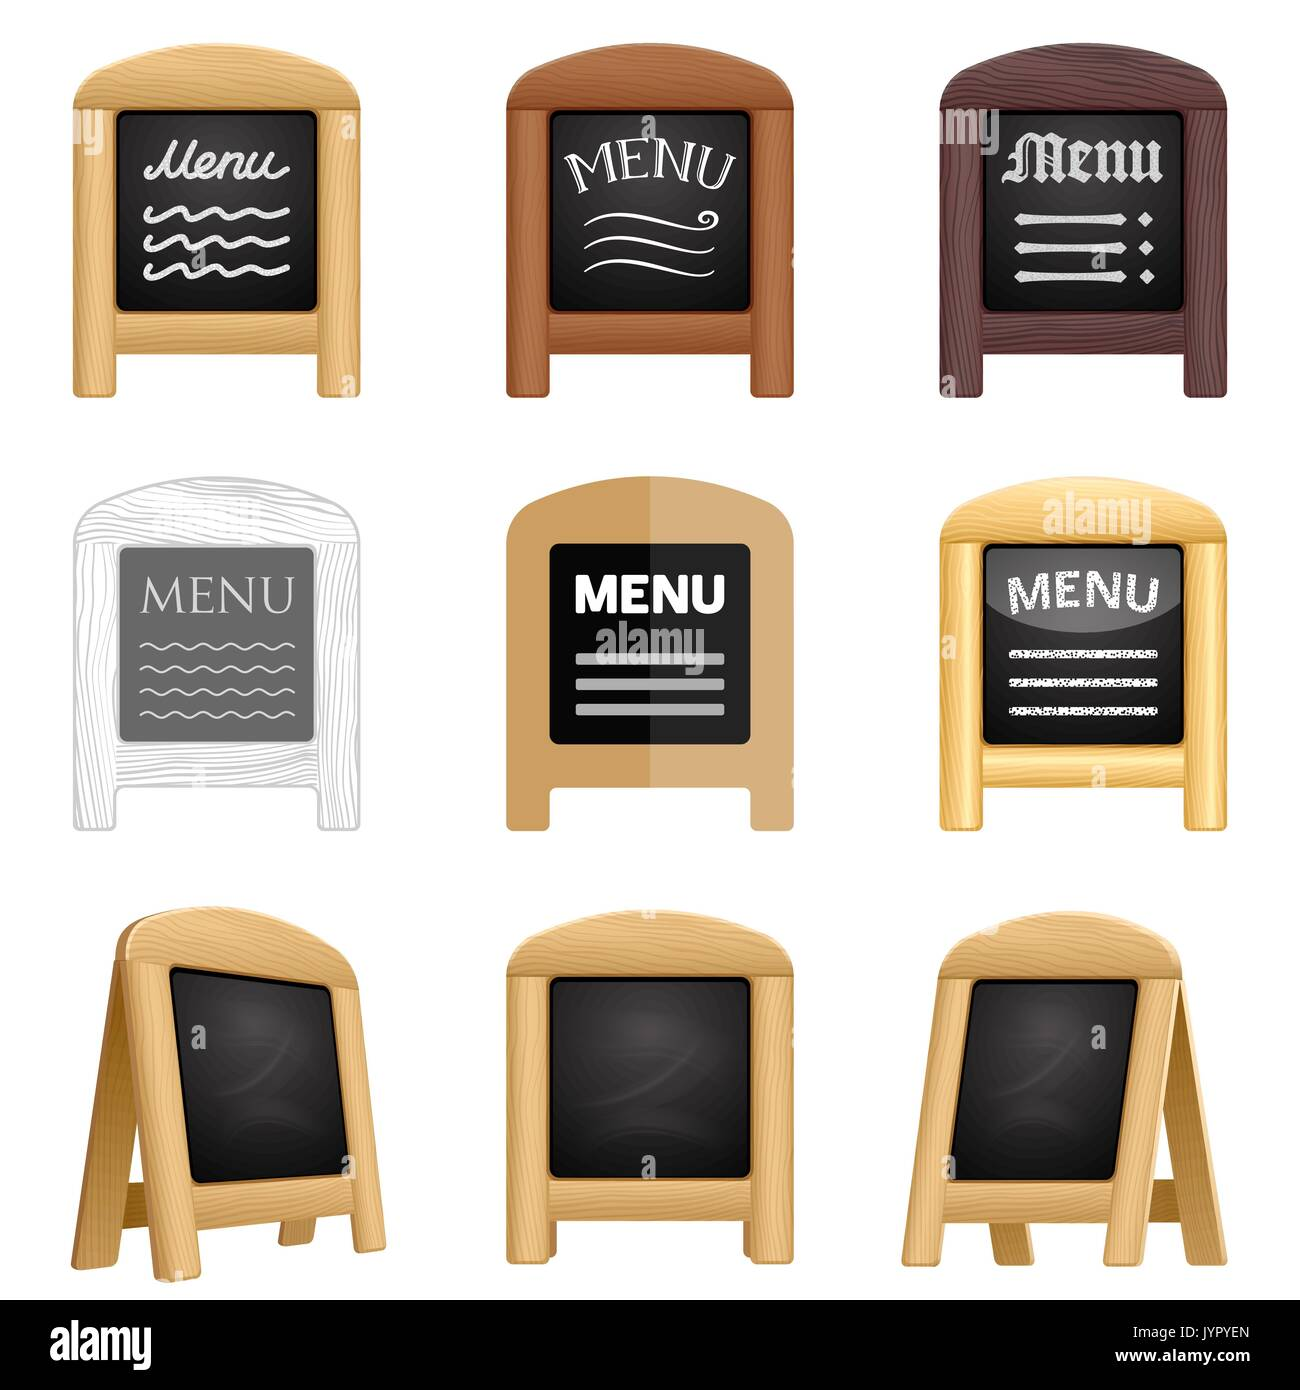 Set of restaurant blackboard menu icons. Various sidewalk sandwich boards with a wooden frame and chalk. 3d realistic blank folding signs for eatery. Stock Vector